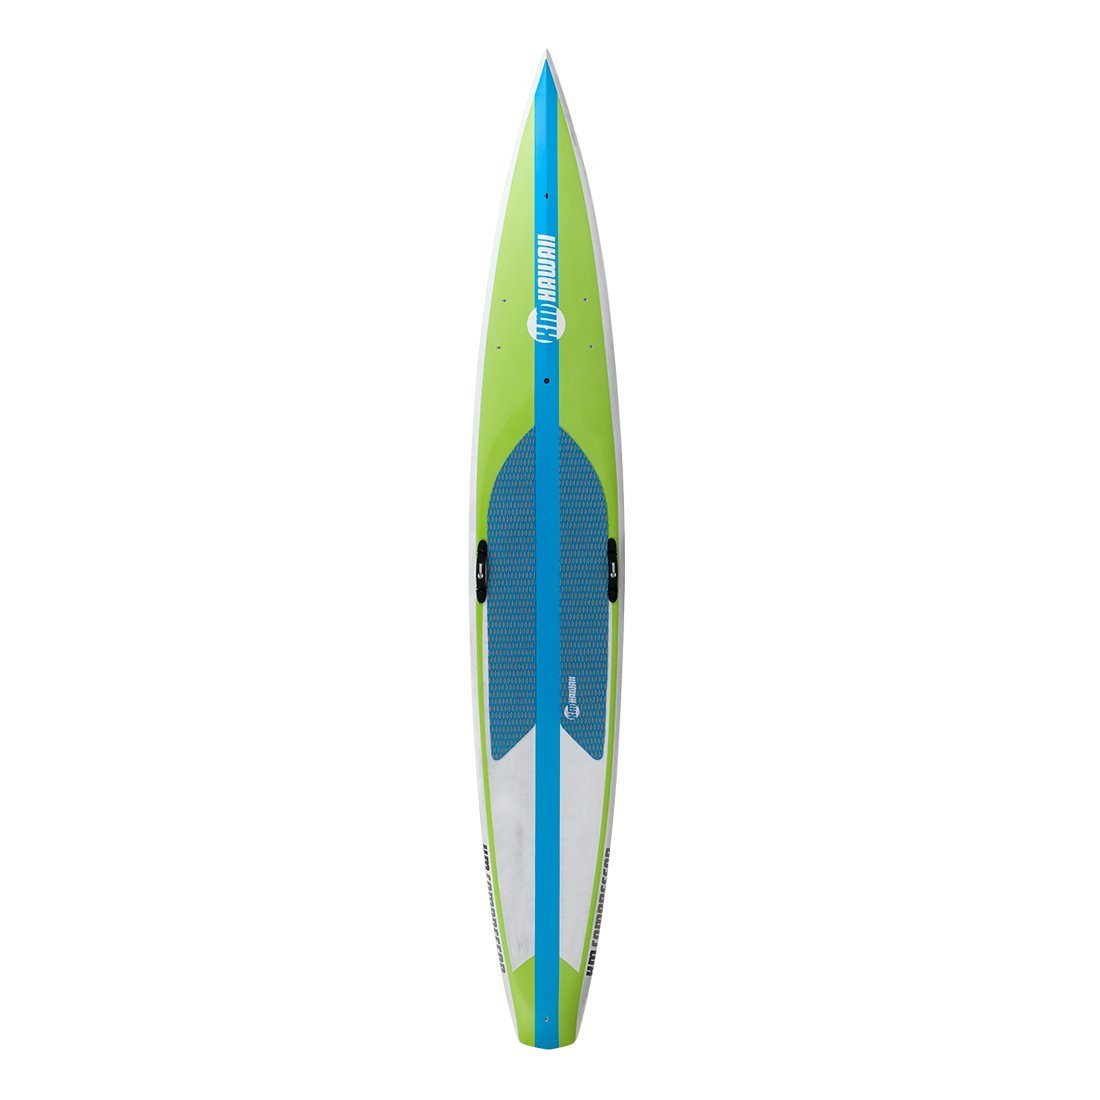 "KM Hawaii Compressor HP - Green-Blue - 12'6"" x 26"" Carbon Fiber Performance Standup Paddle Board Paddle Boards 4theoutdoors America US USA SUP outdoors"